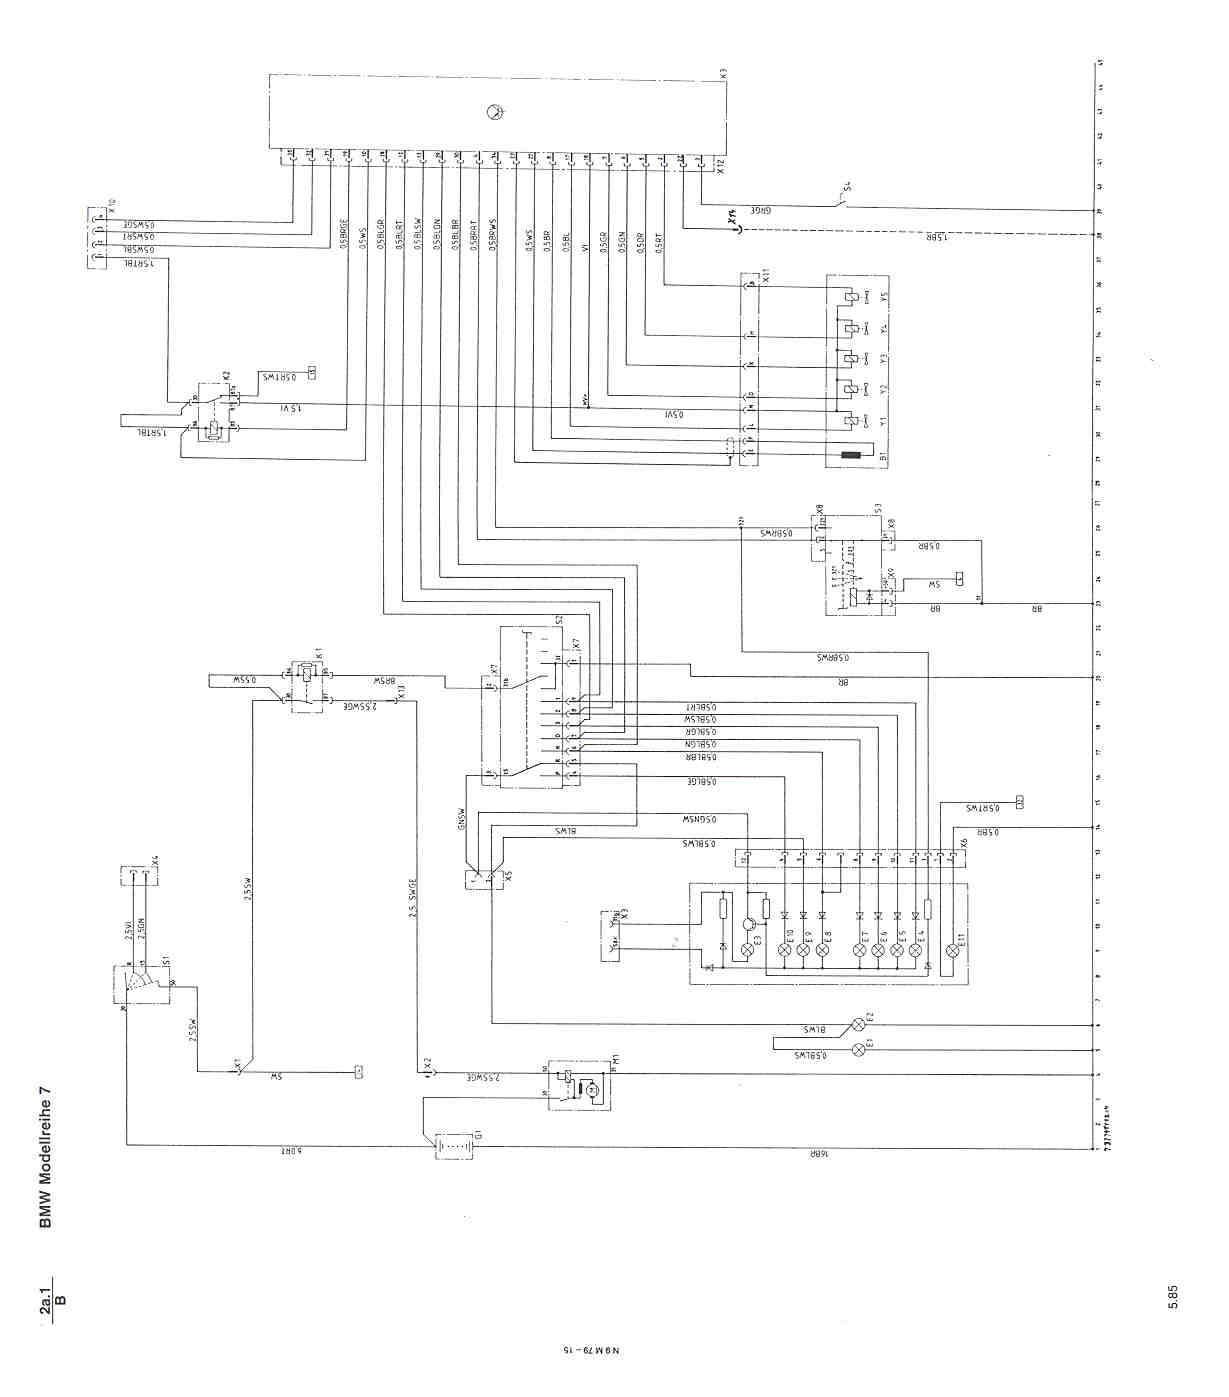 motronic engine schematic diagram